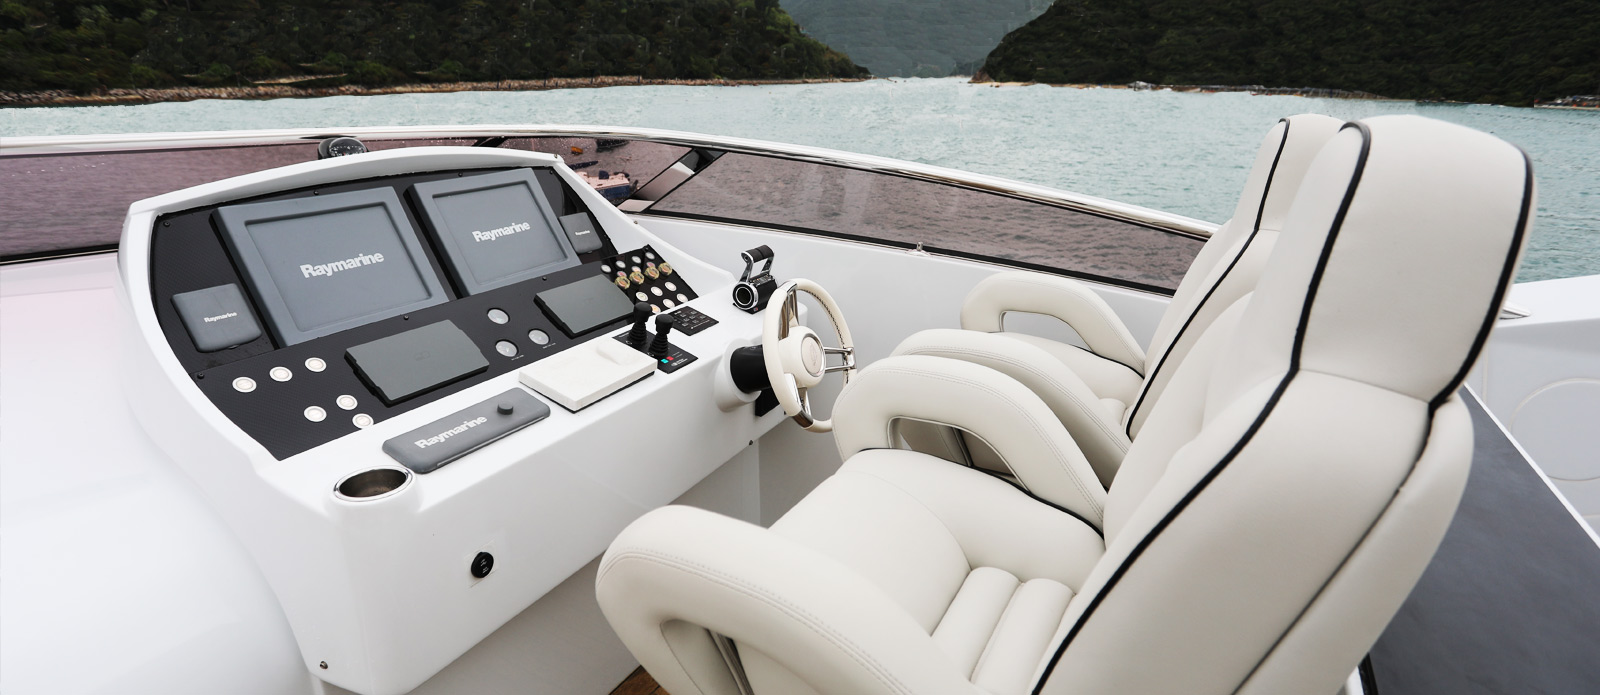 Sunseeker-30-Metre-Yacht-Coraysa-Flybridge-Helm-Station